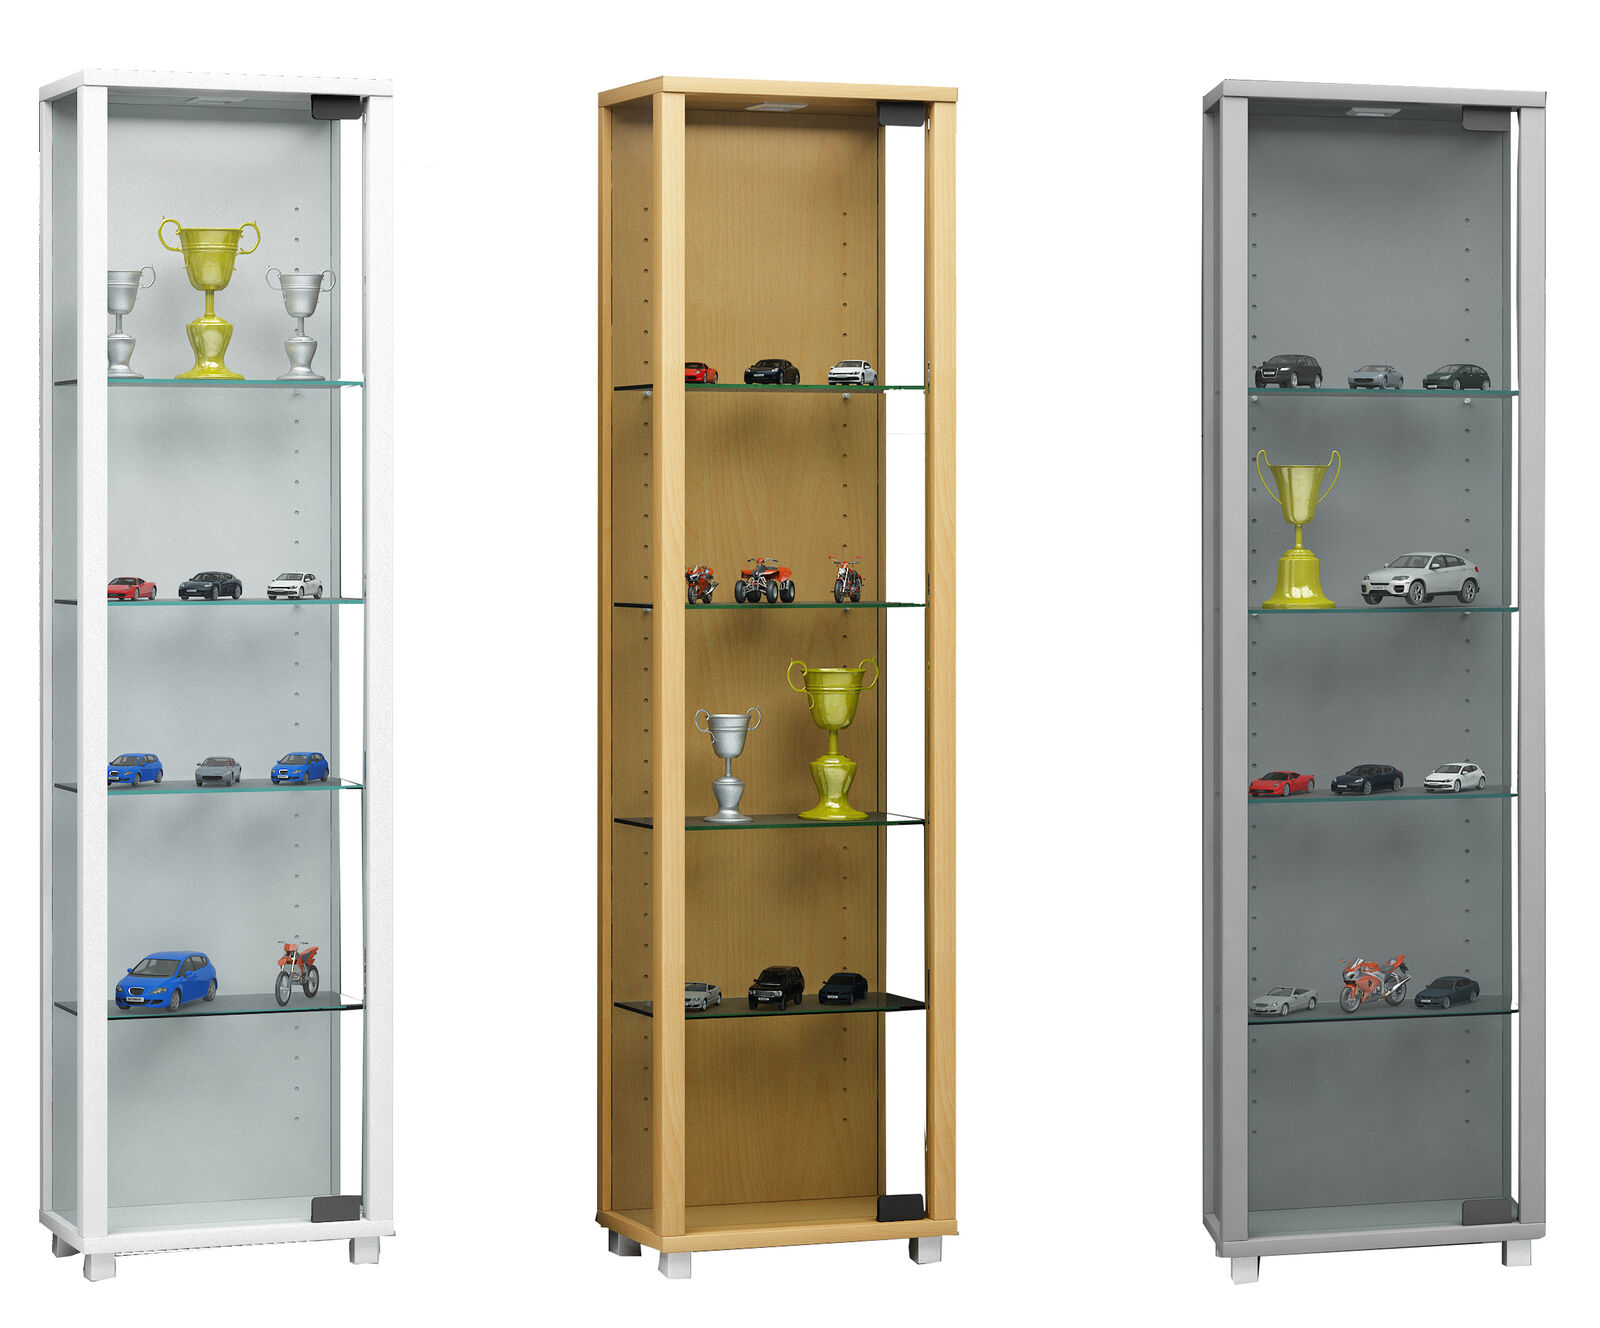 Details About Tall Glass Display Cabinet Floor Standing Toys Vapes Narrow With 4 Glass Shelves